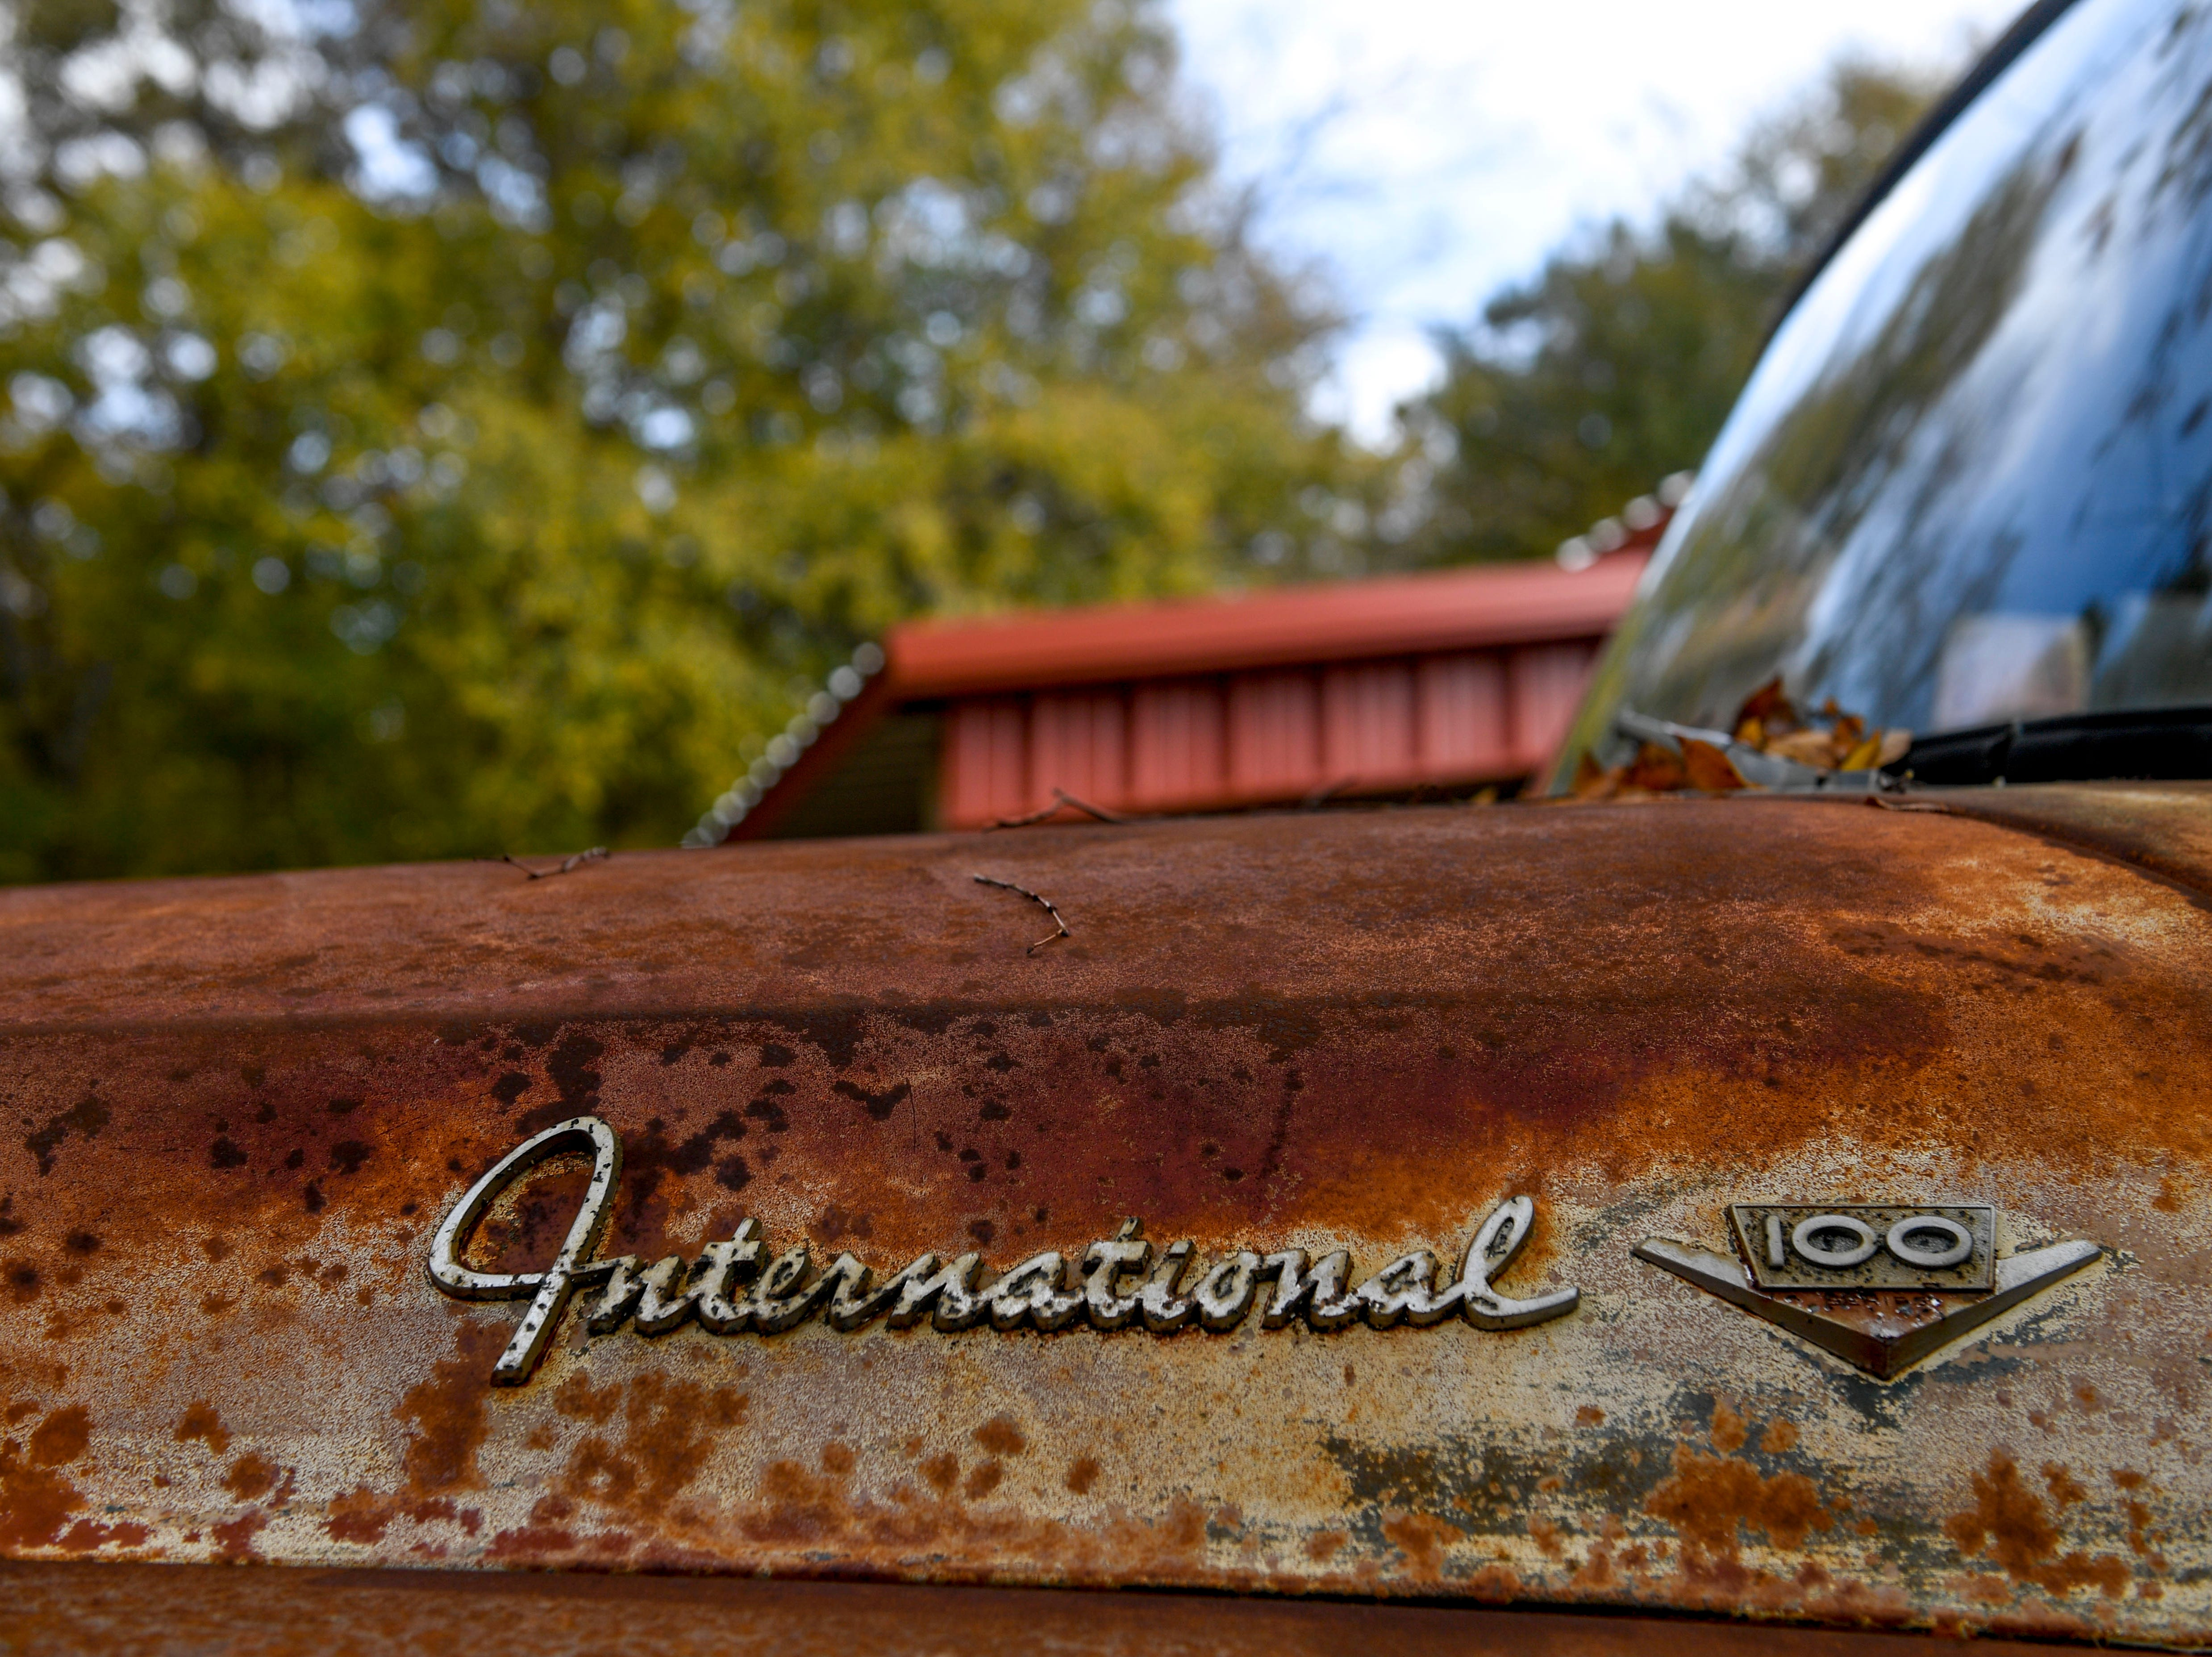 The logo of an International pickup covered in a beautiful rust layer as shown at Stillwaters Farm in Henderson, Tenn., on Monday, Nov. 5, 2018.